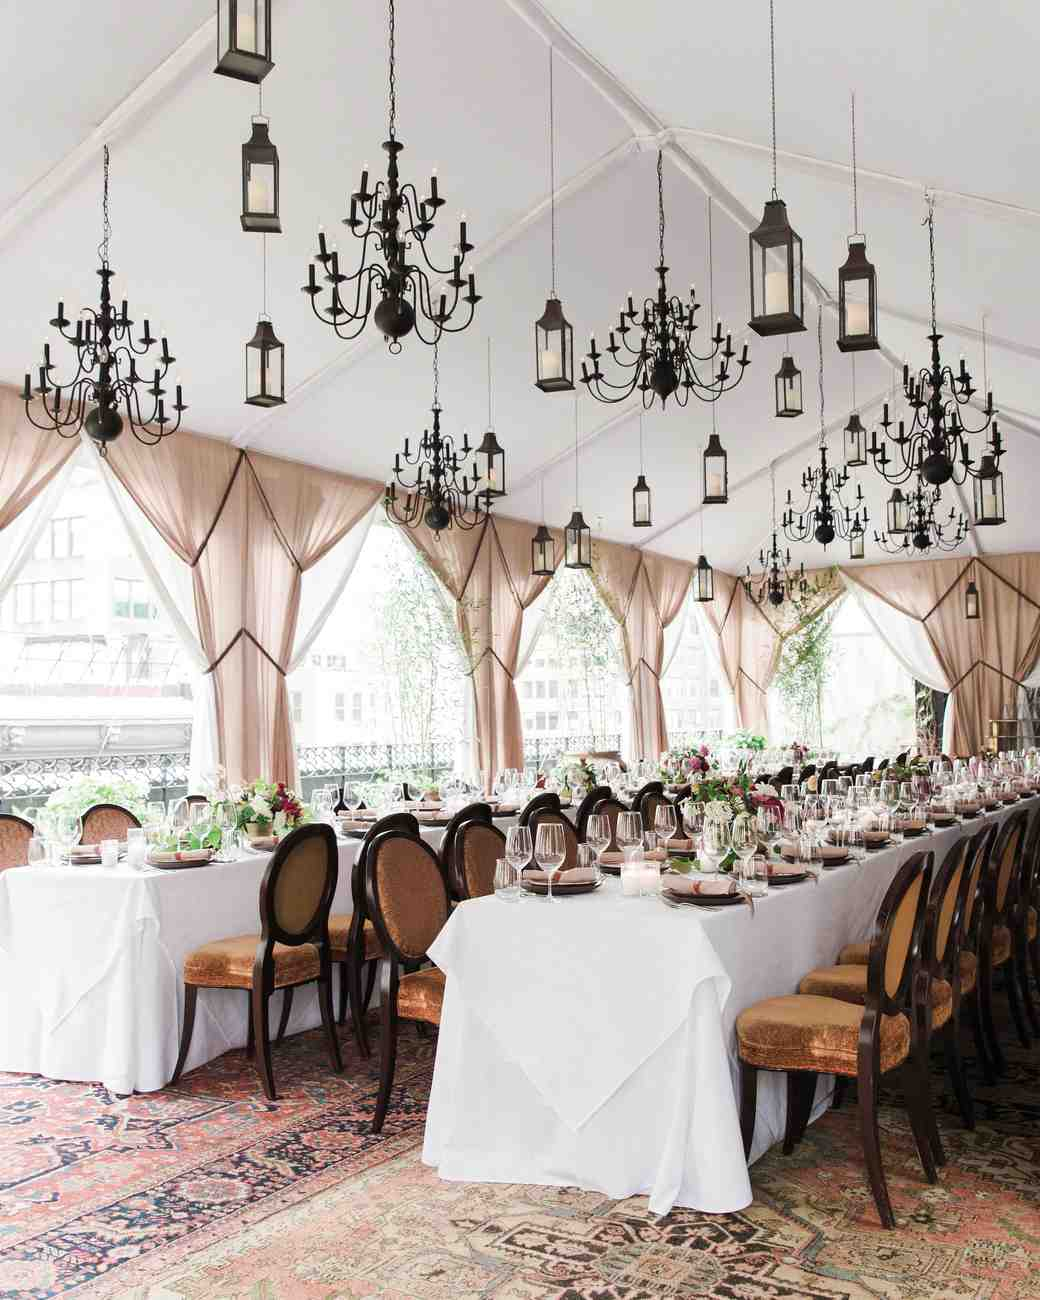 Tent Wedding Ideas Wedding Design Ideas Tent Wedding Ideas Hey Ladies Are  There Any Other Brides